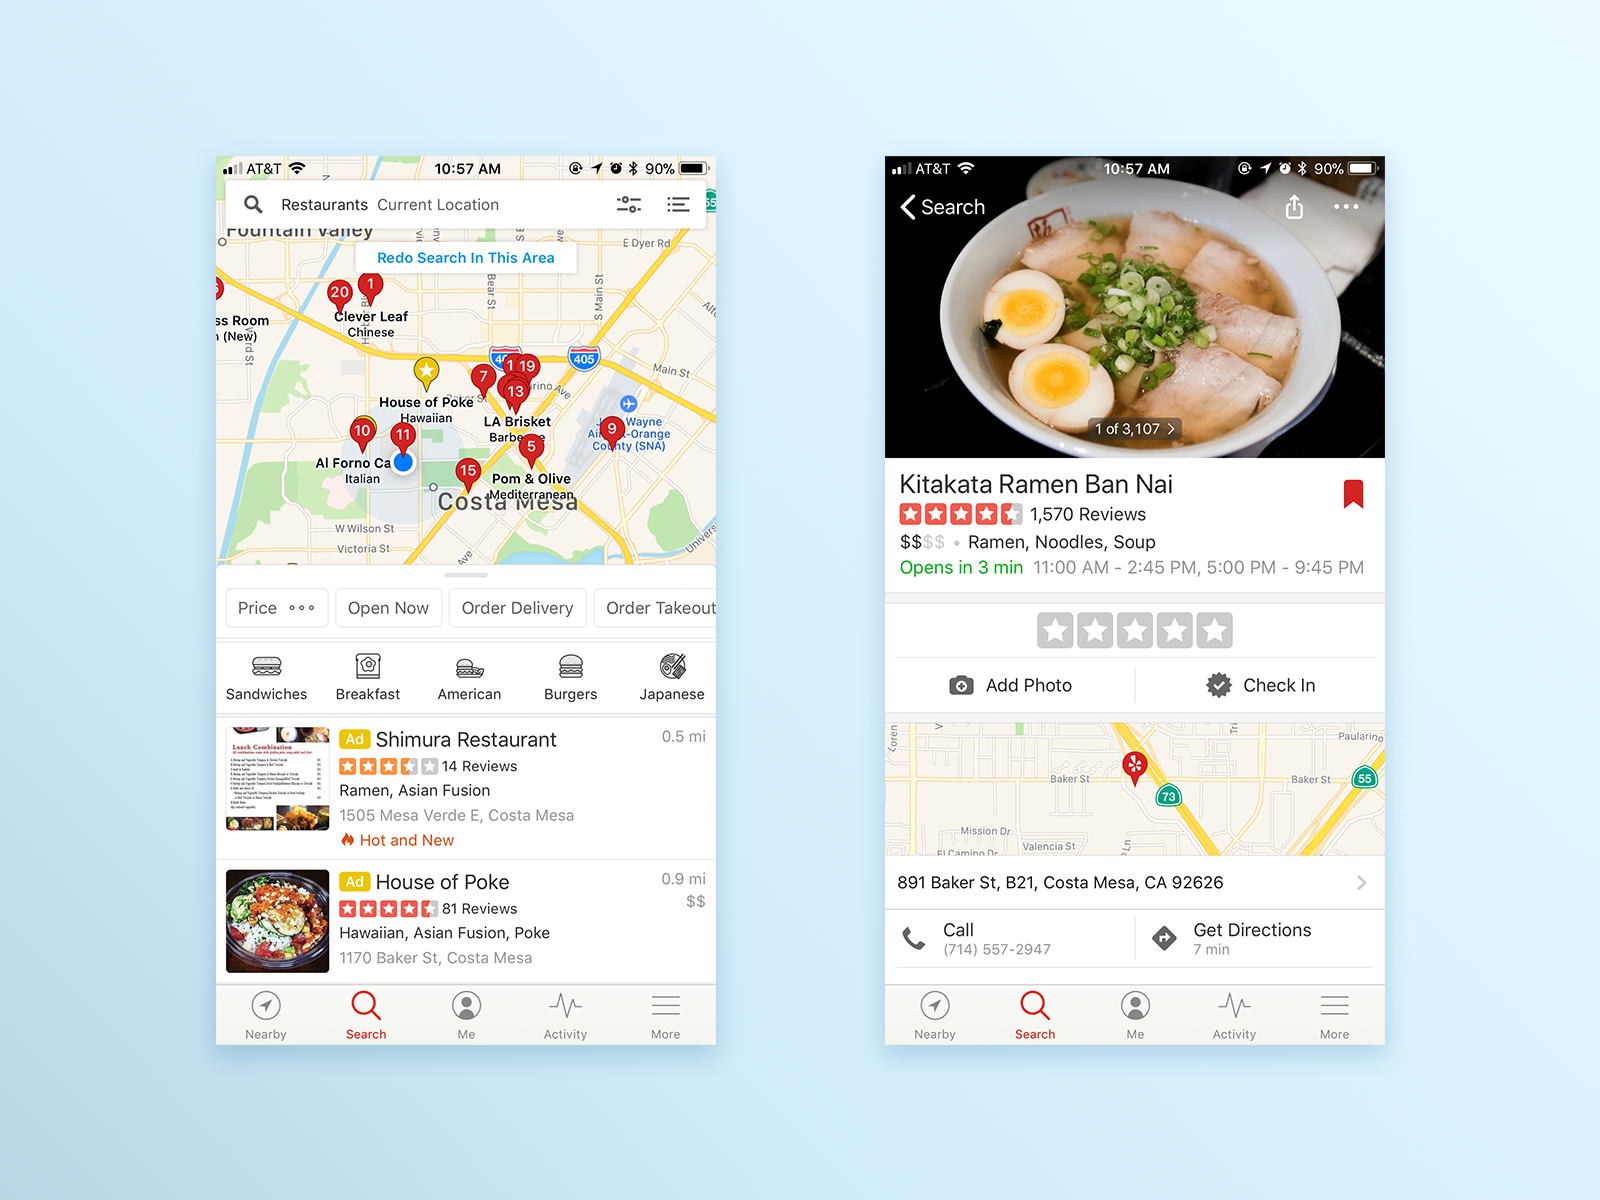 Yelp's search result page (left) and restaurant information page (right).